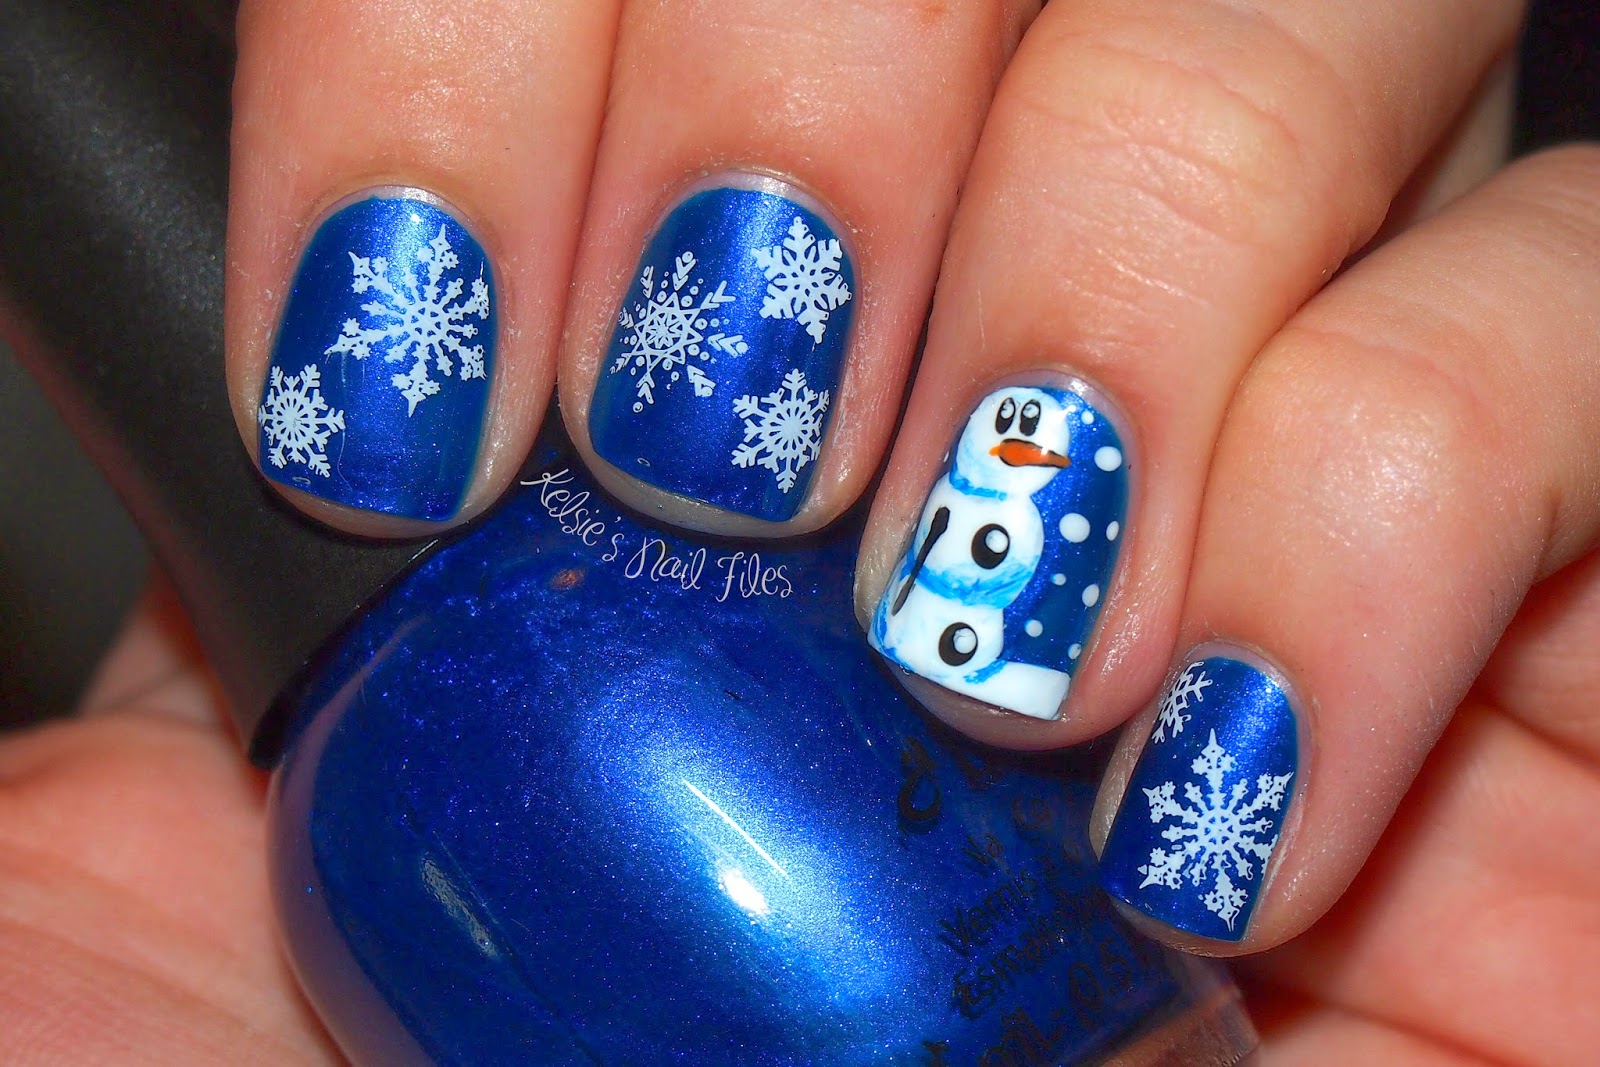 Kelsies nail files 12 days of christmas nail art challenge snow 12 days of christmas nail art challenge snow bps product review prinsesfo Images